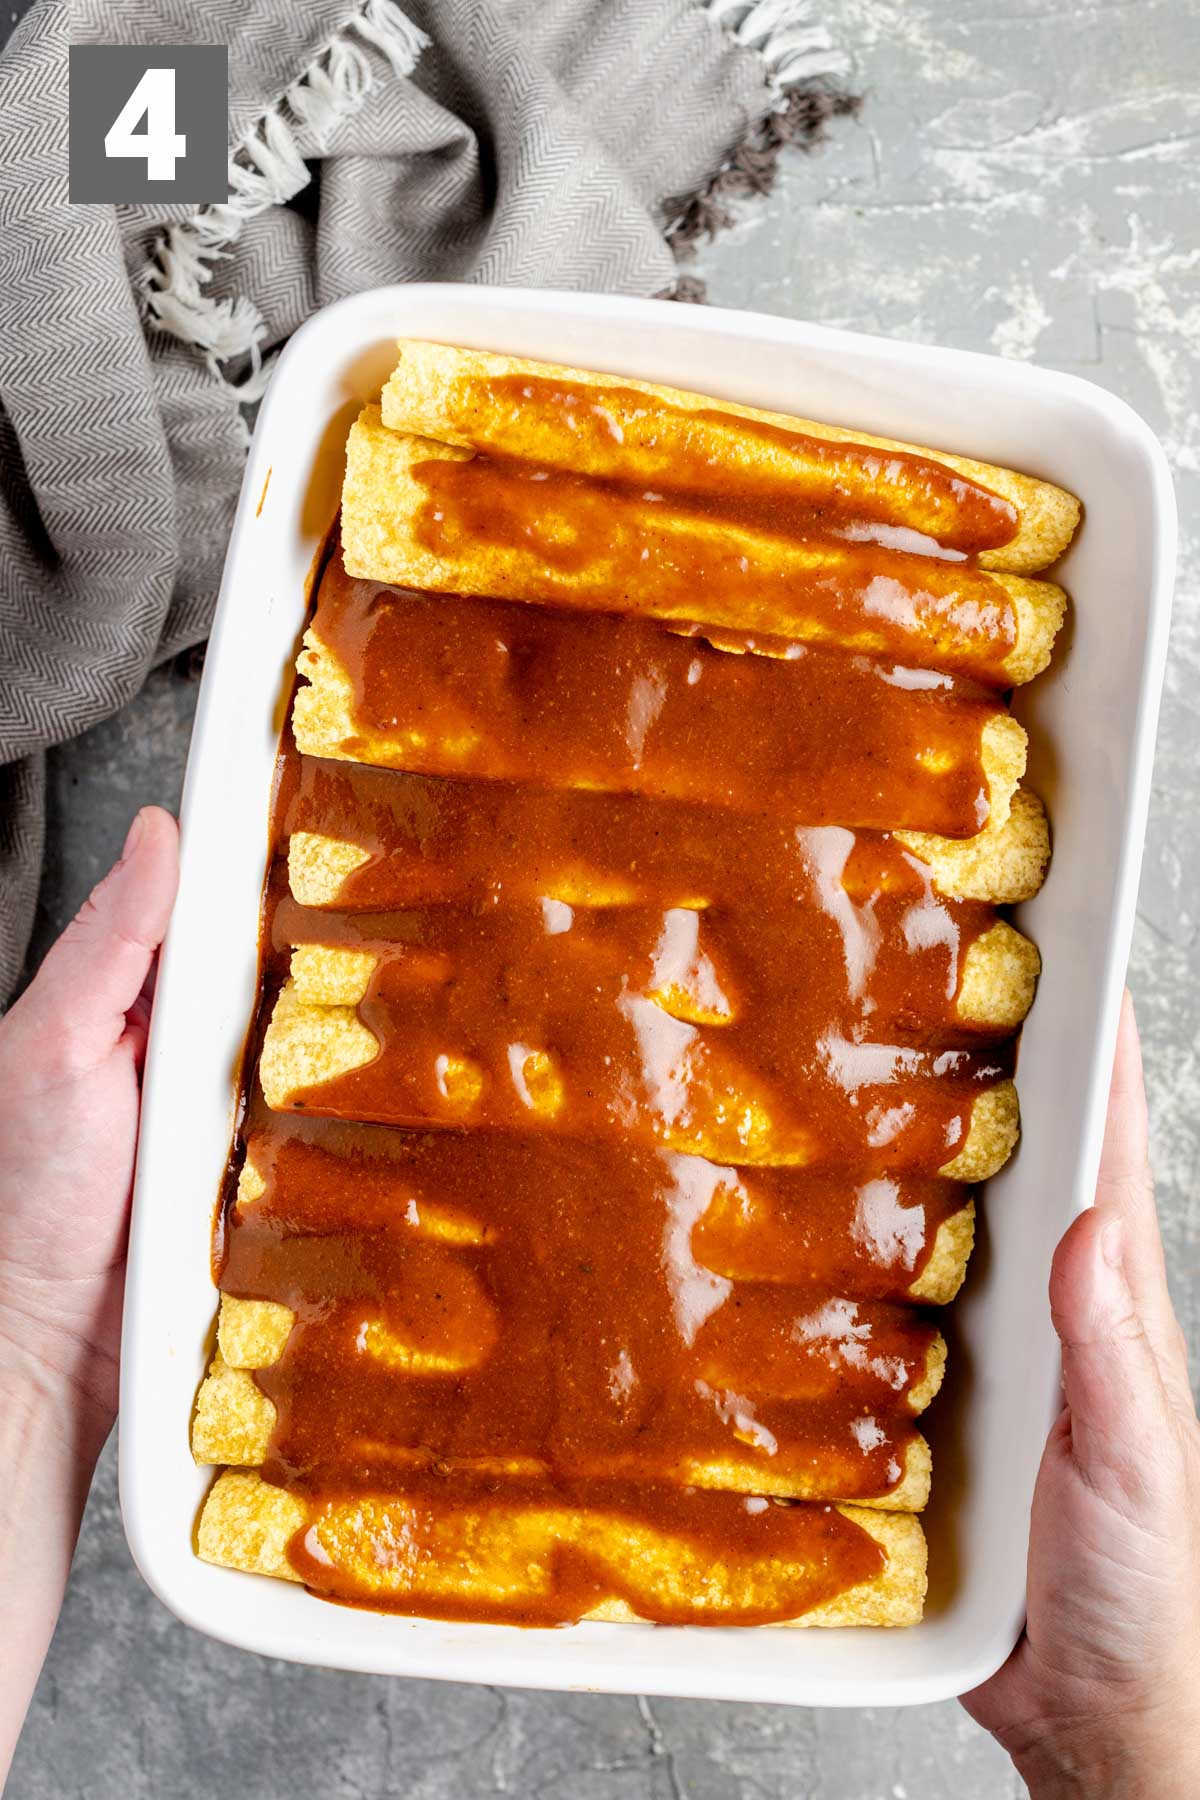 the enchiladas with sauce on them before they are baked